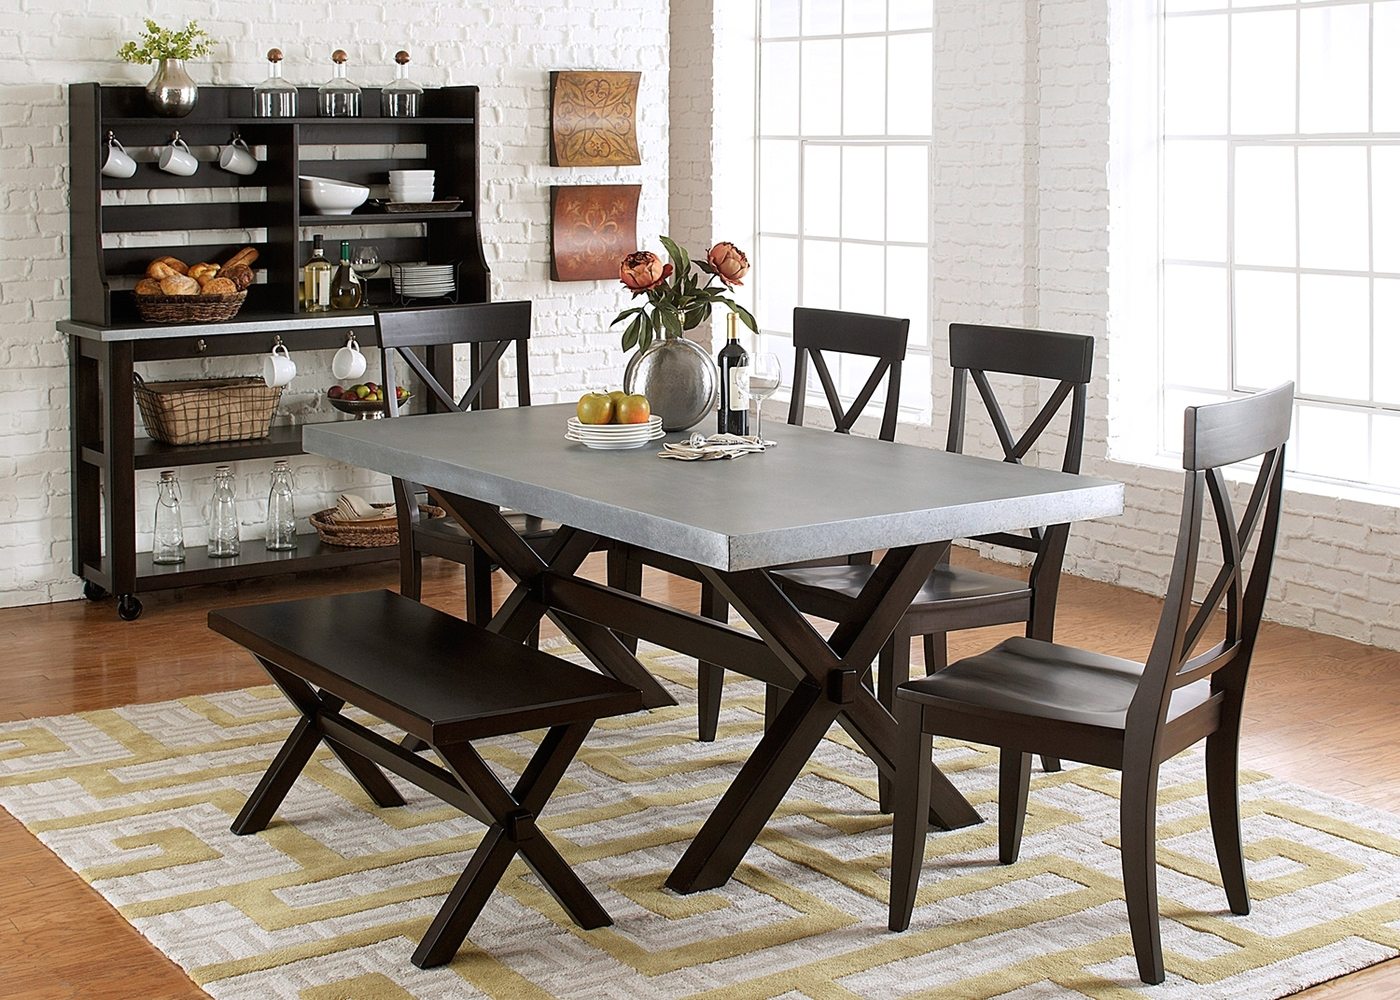 Keaton charcoal finish trestle table casual dining set for Informal dining table